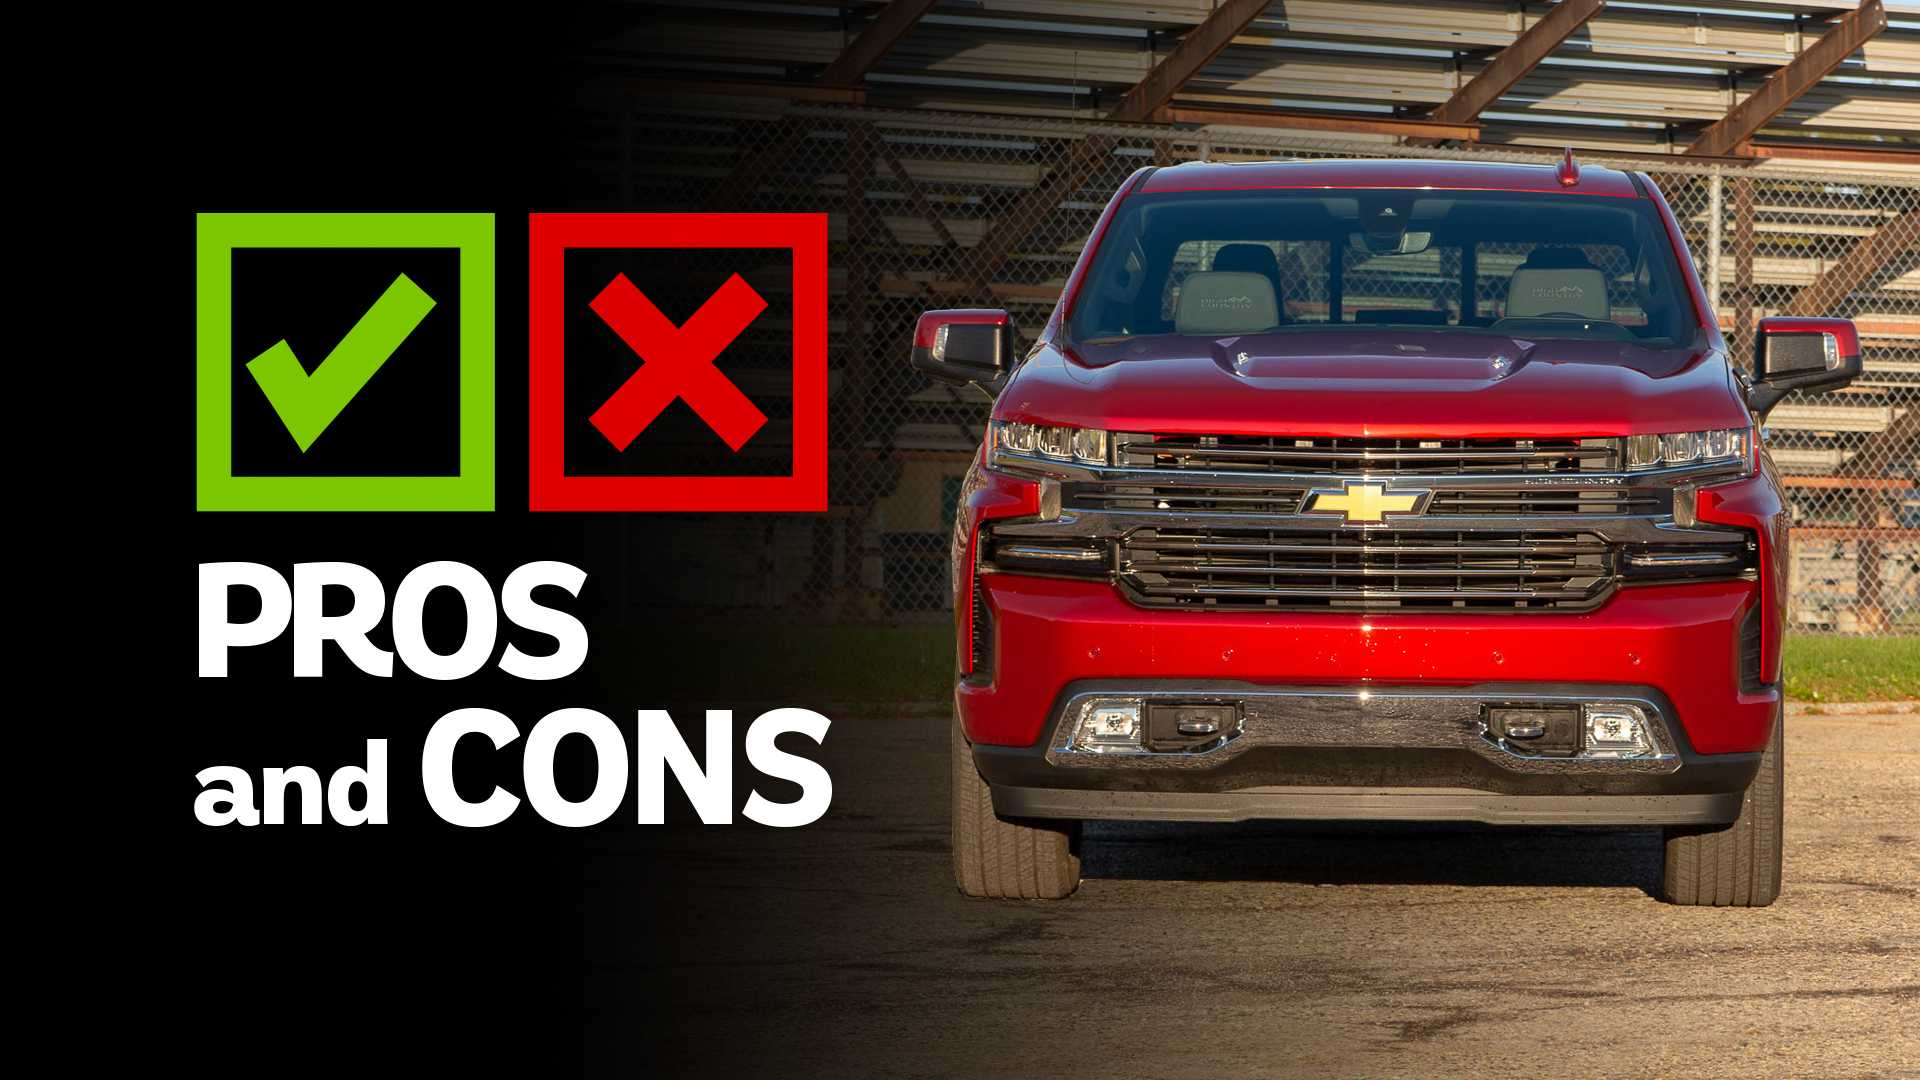 54 New Best High Country Chevrolet 2019 Price And Review Performance and New Engine with Best High Country Chevrolet 2019 Price And Review